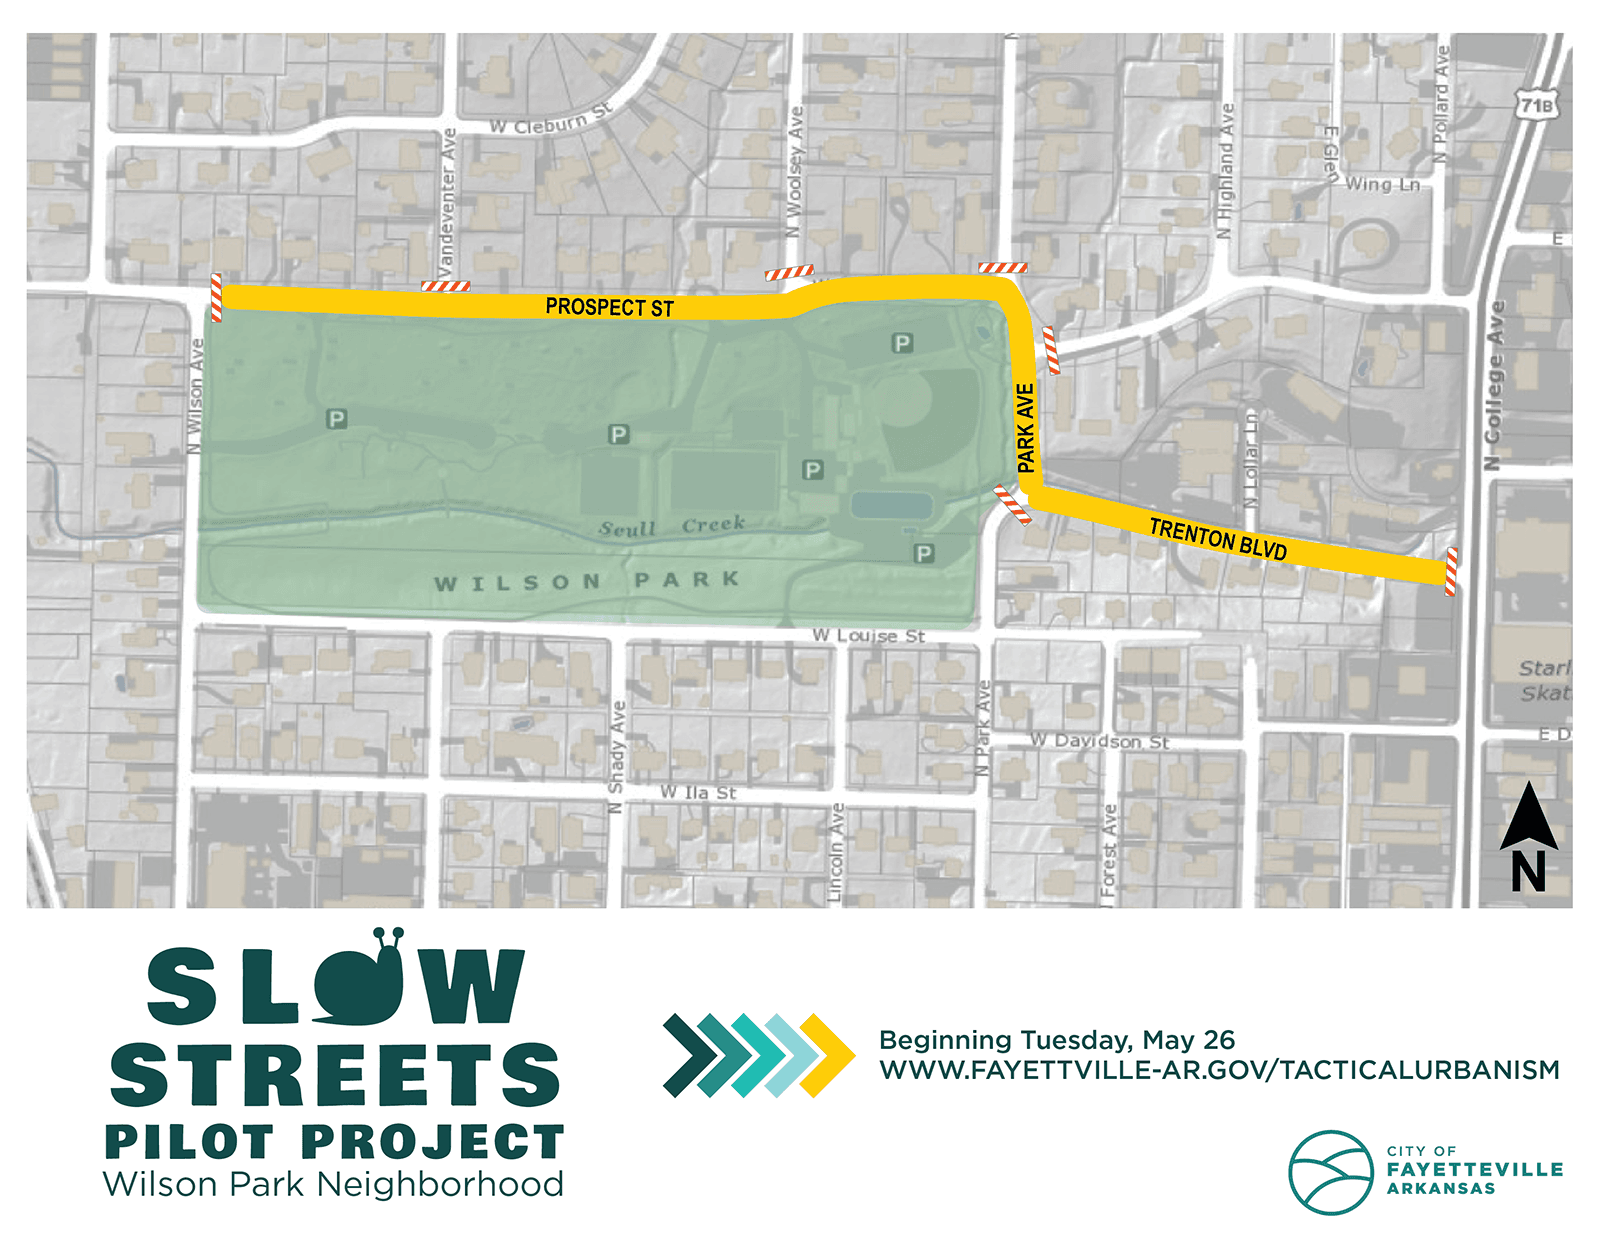 map of slow streets project area in Wilson Park neighborhood